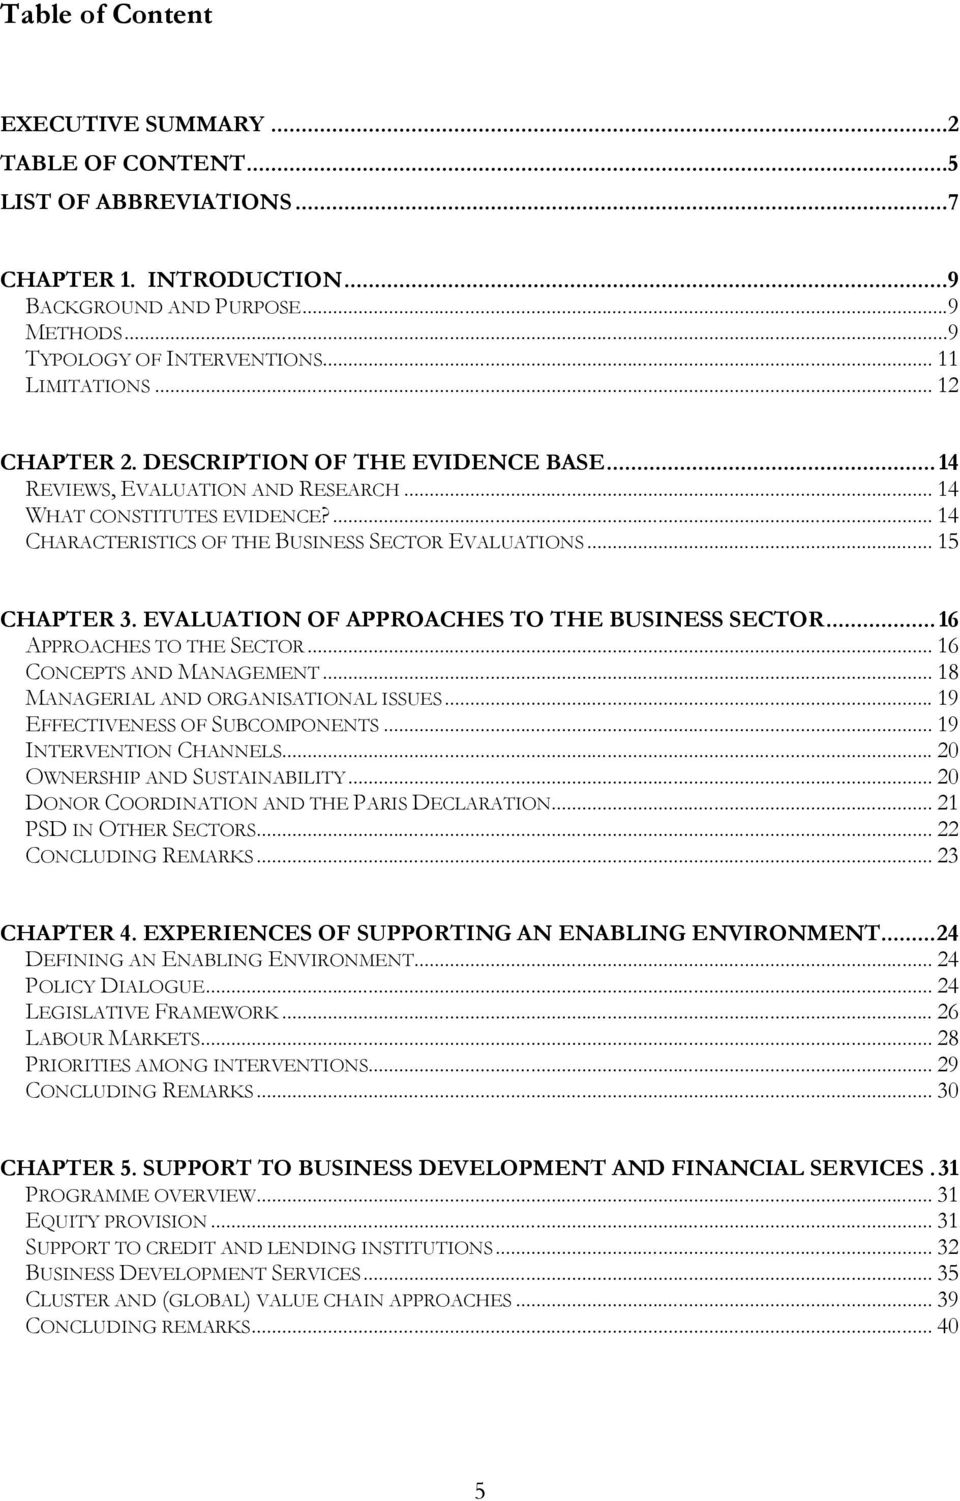 EVALUATION OF APPROACHES TO THE BUSINESS SECTOR... 16 APPROACHES TO THE SECTOR... 16 CONCEPTS AND MANAGEMENT... 18 MANAGERIAL AND ORGANISATIONAL ISSUES... 19 EFFECTIVENESS OF SUBCOMPONENTS.